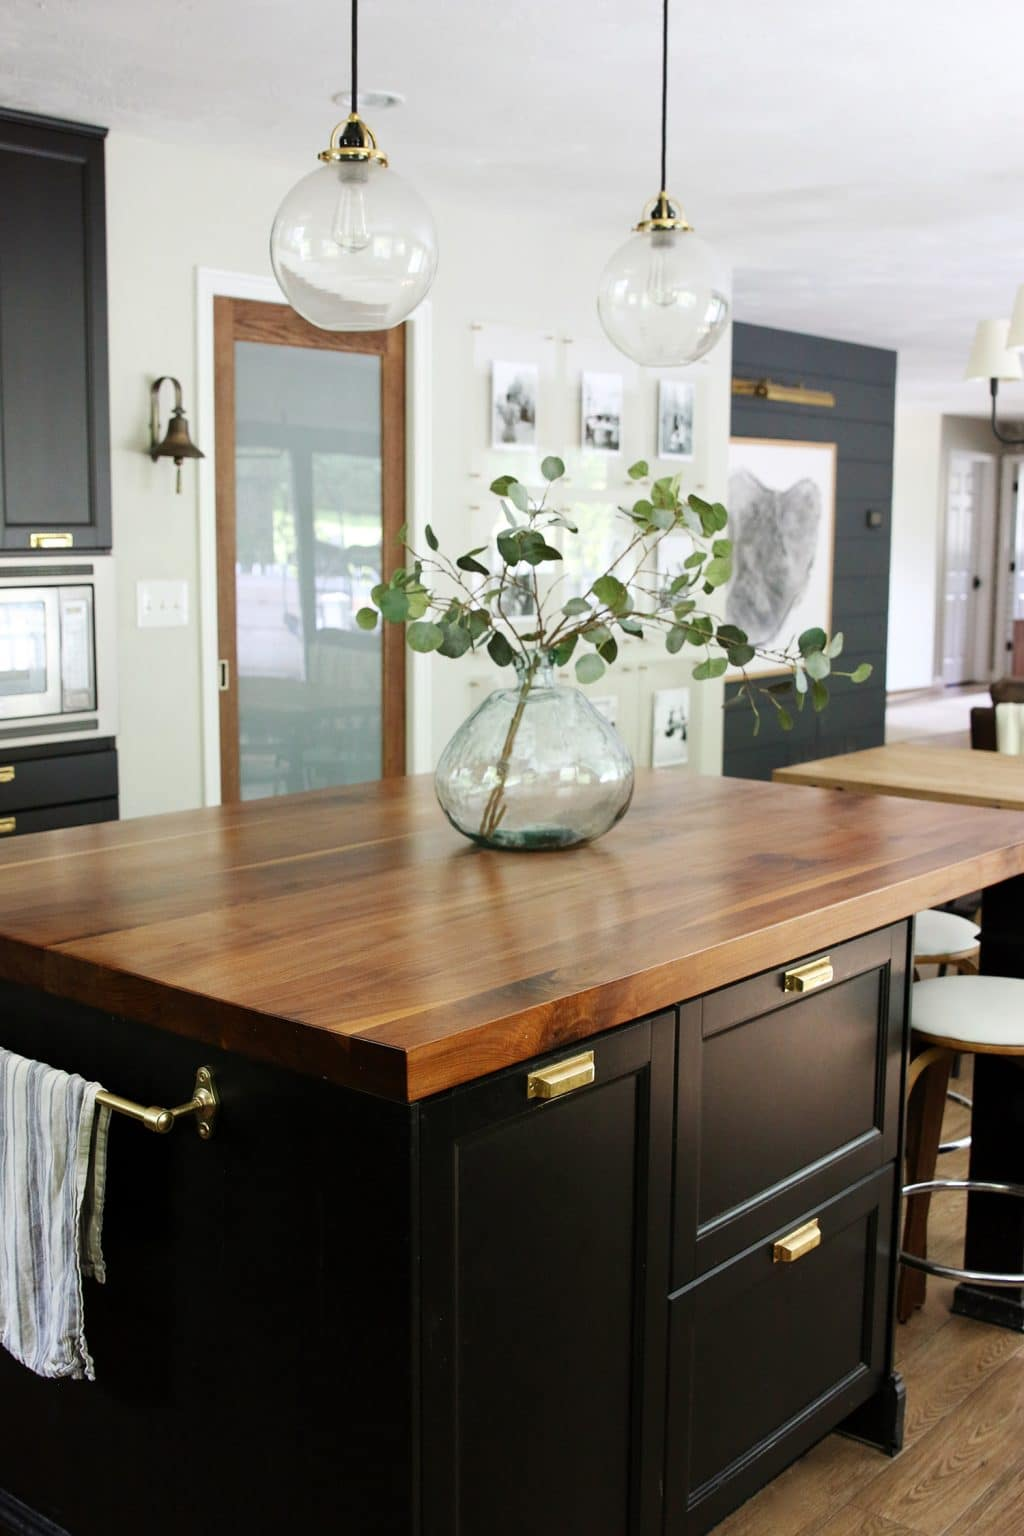 Used plank style black walnut diy countertops from craft art they are offering our readers 20 off any of their countertops they have a bunch with